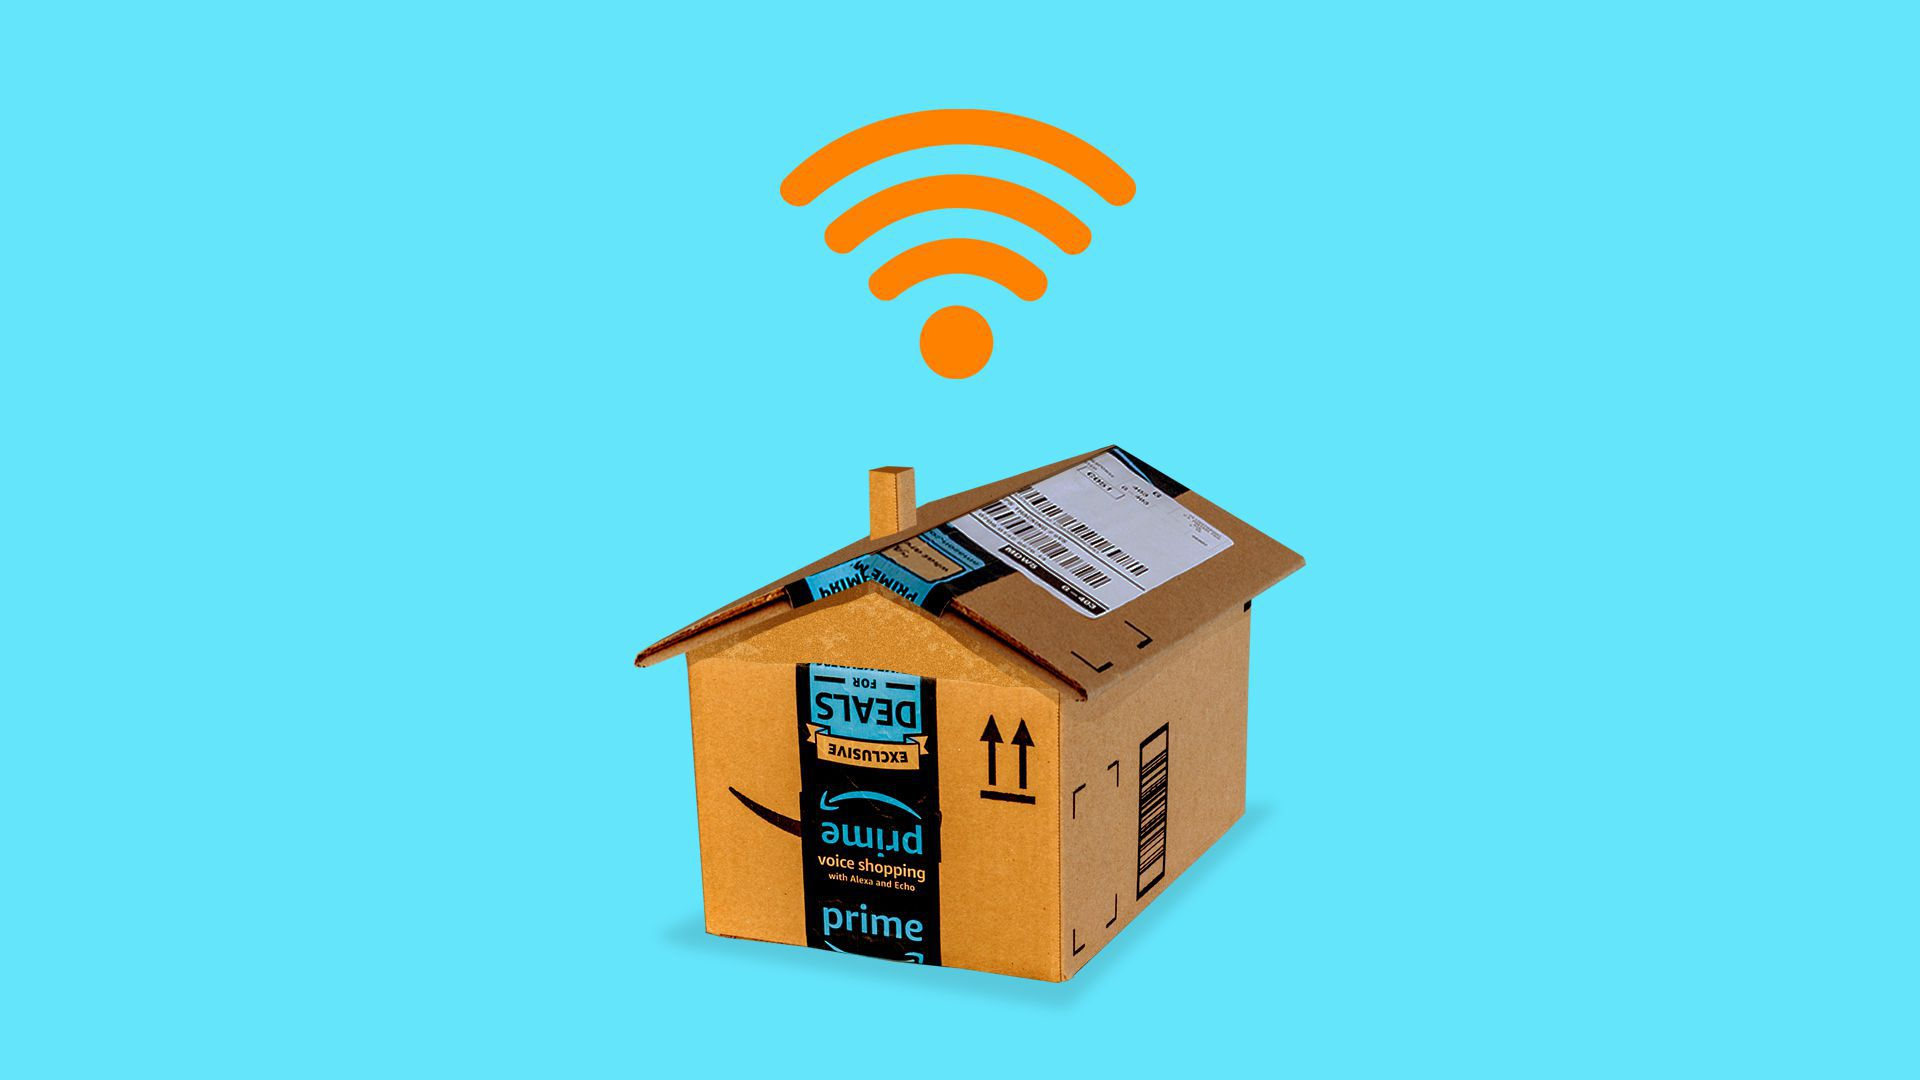 In this picture, a deconstructed Amazon delivery box is shaped into a house, and wifi signals erupt from the top of the house.